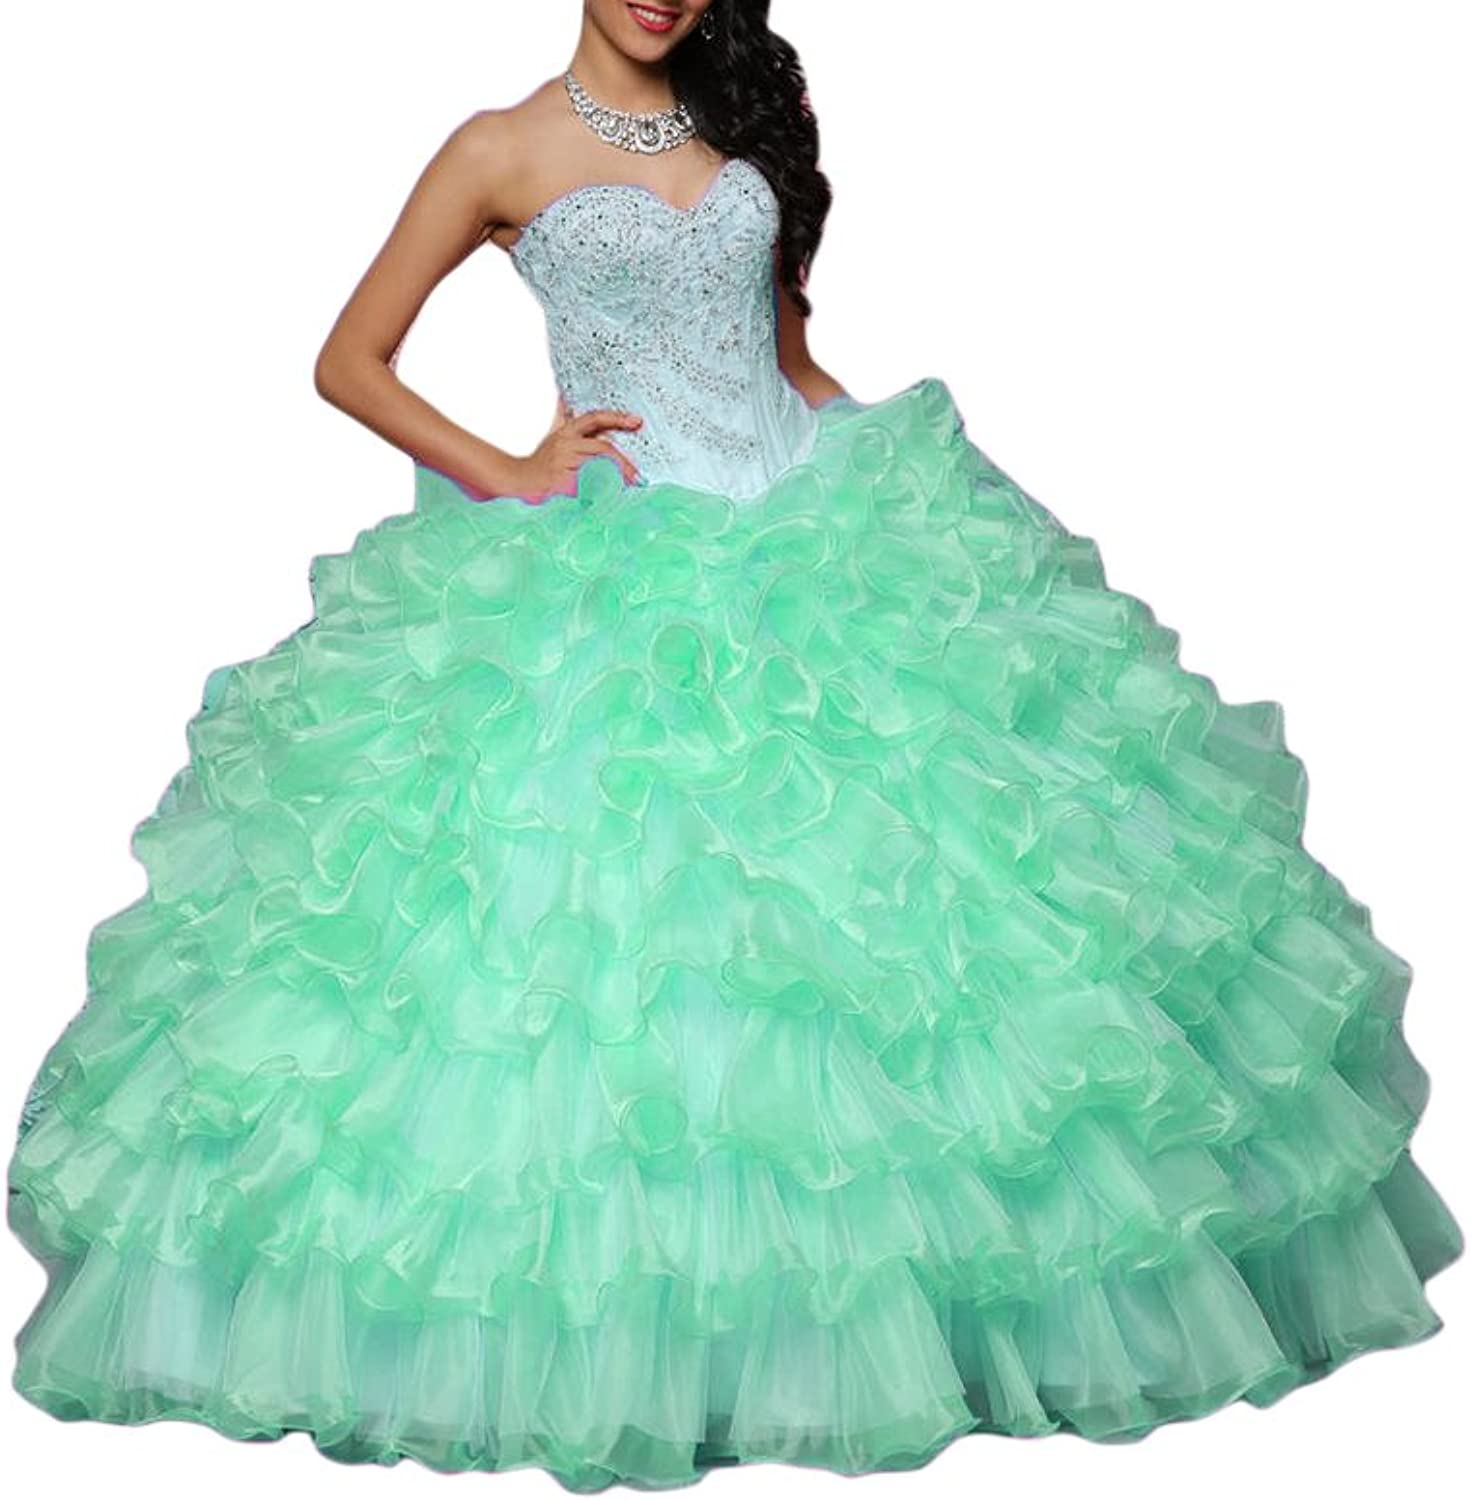 DKBridal Women's Sweetheart Beaded Long Prom Gown Ruffles Quinceanera Dresses